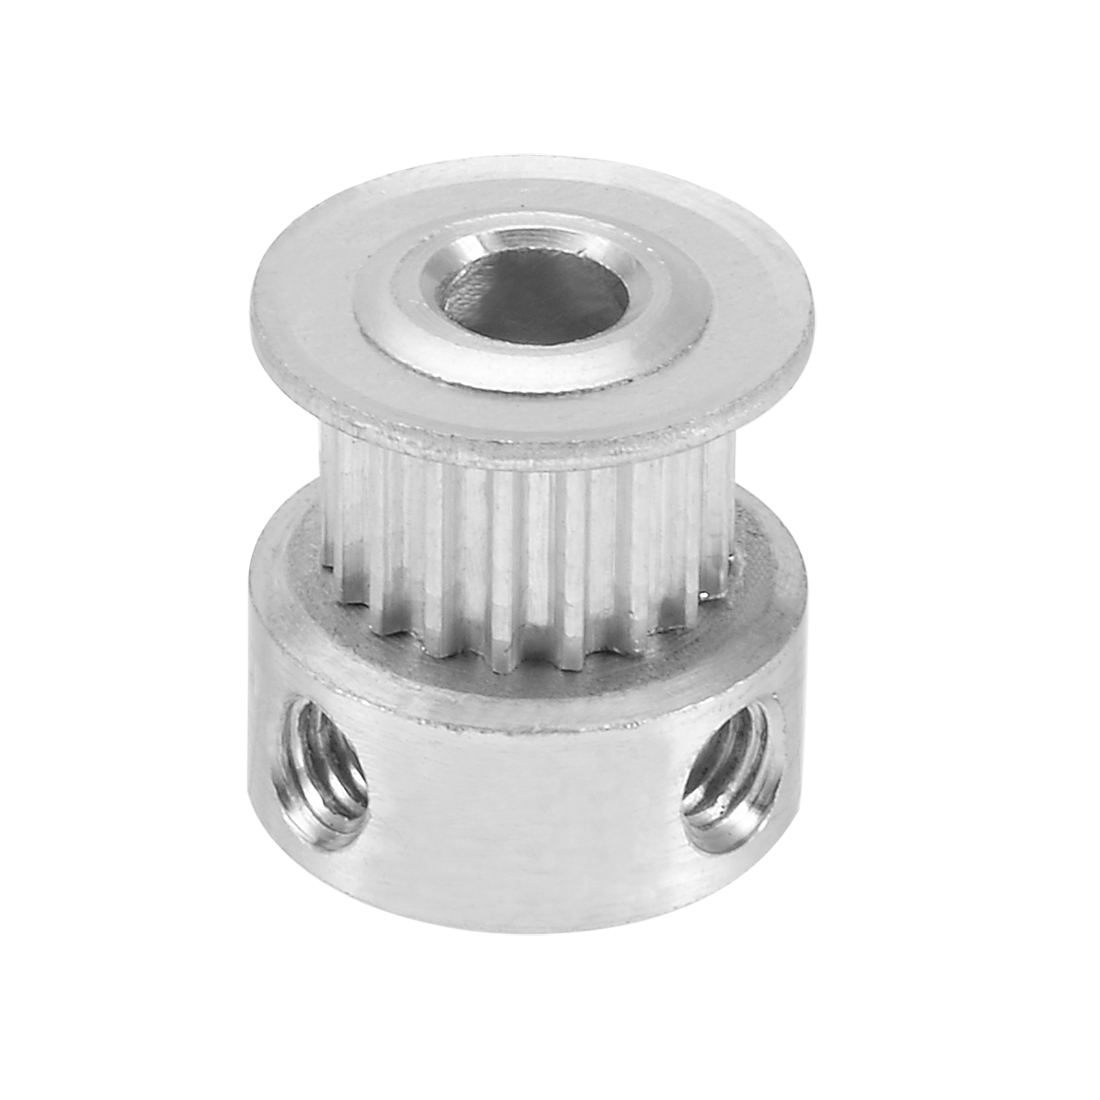 Aluminum GT2 18 Teeth Bore 5mm Timing Belt Pulley Flange Synchronous Wheel for 3D Printer